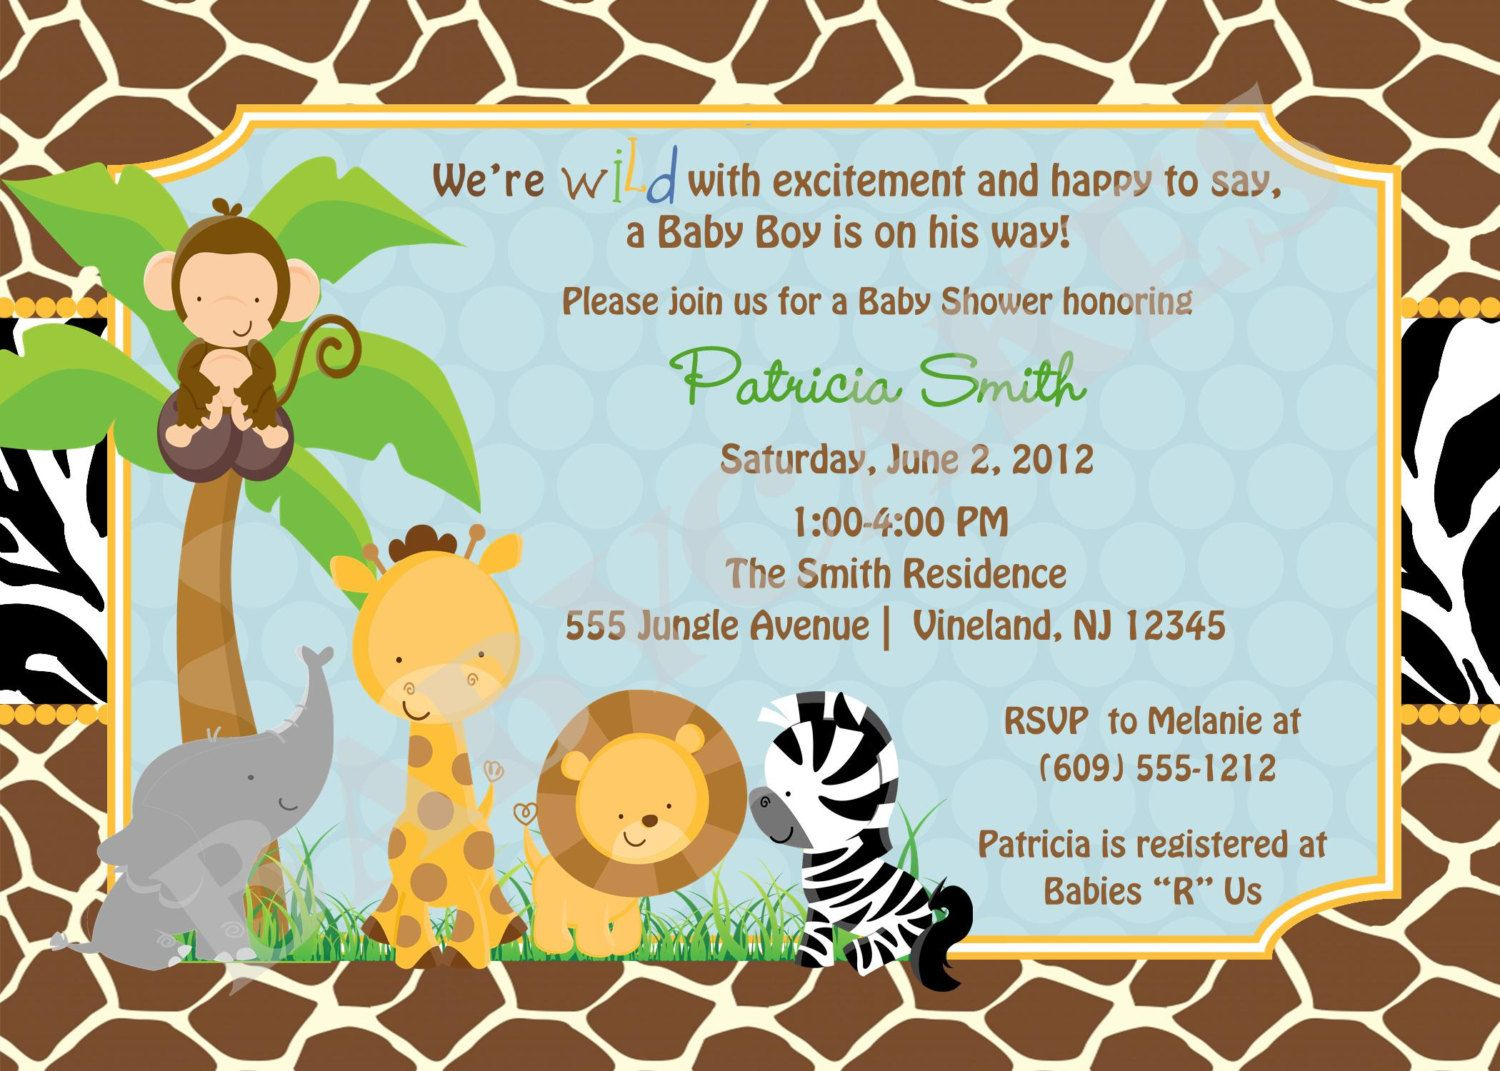 baby shower invitations safari theme wording | safari jungle, Baby shower invitations